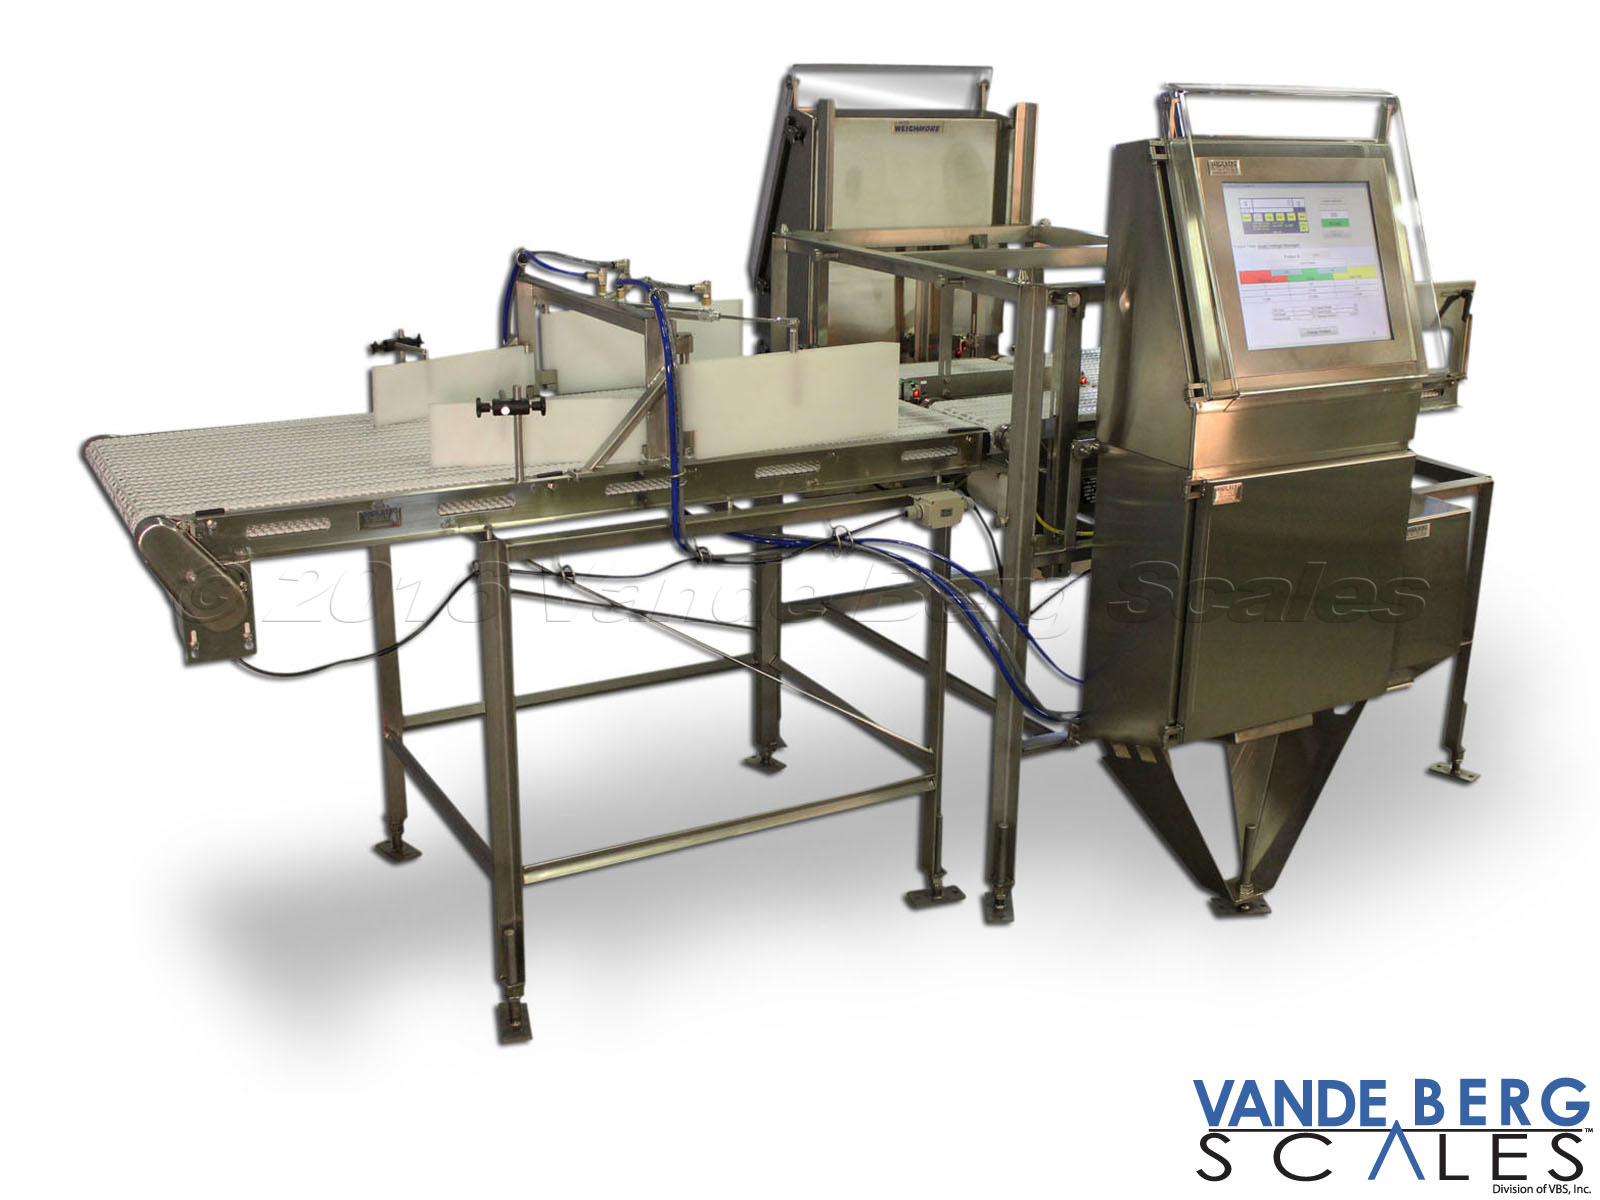 Dual-Lane chicken pouch checkweigher with 17-in touchscreen HMI